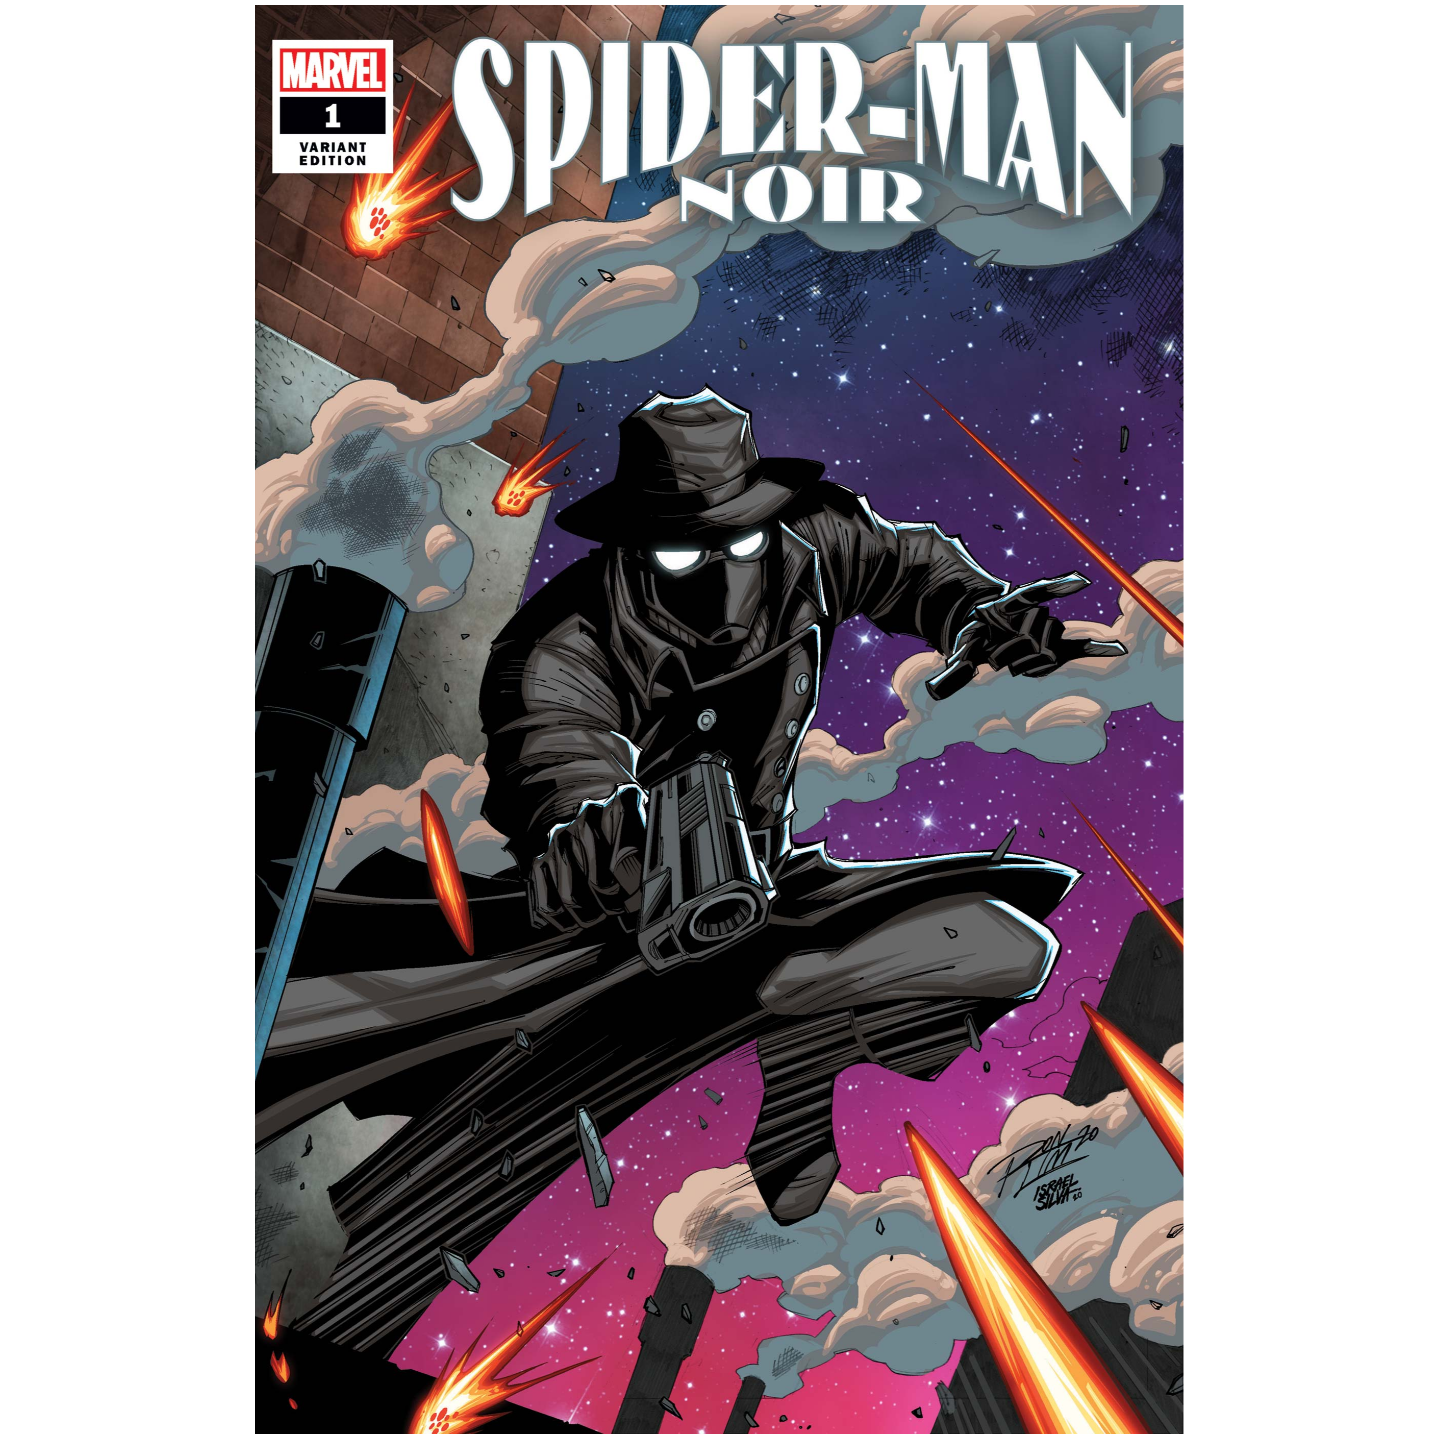 SPIDER-MAN NOIR 1 OF 5 RON LIM VAR